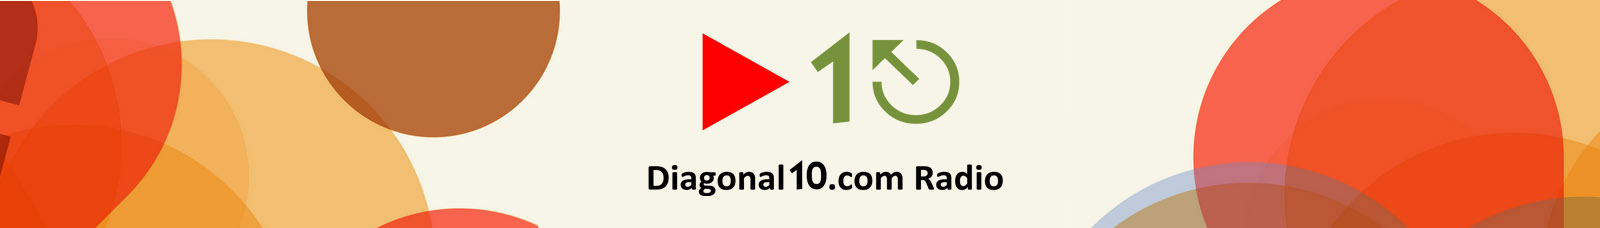 Diagonal10.com Radio